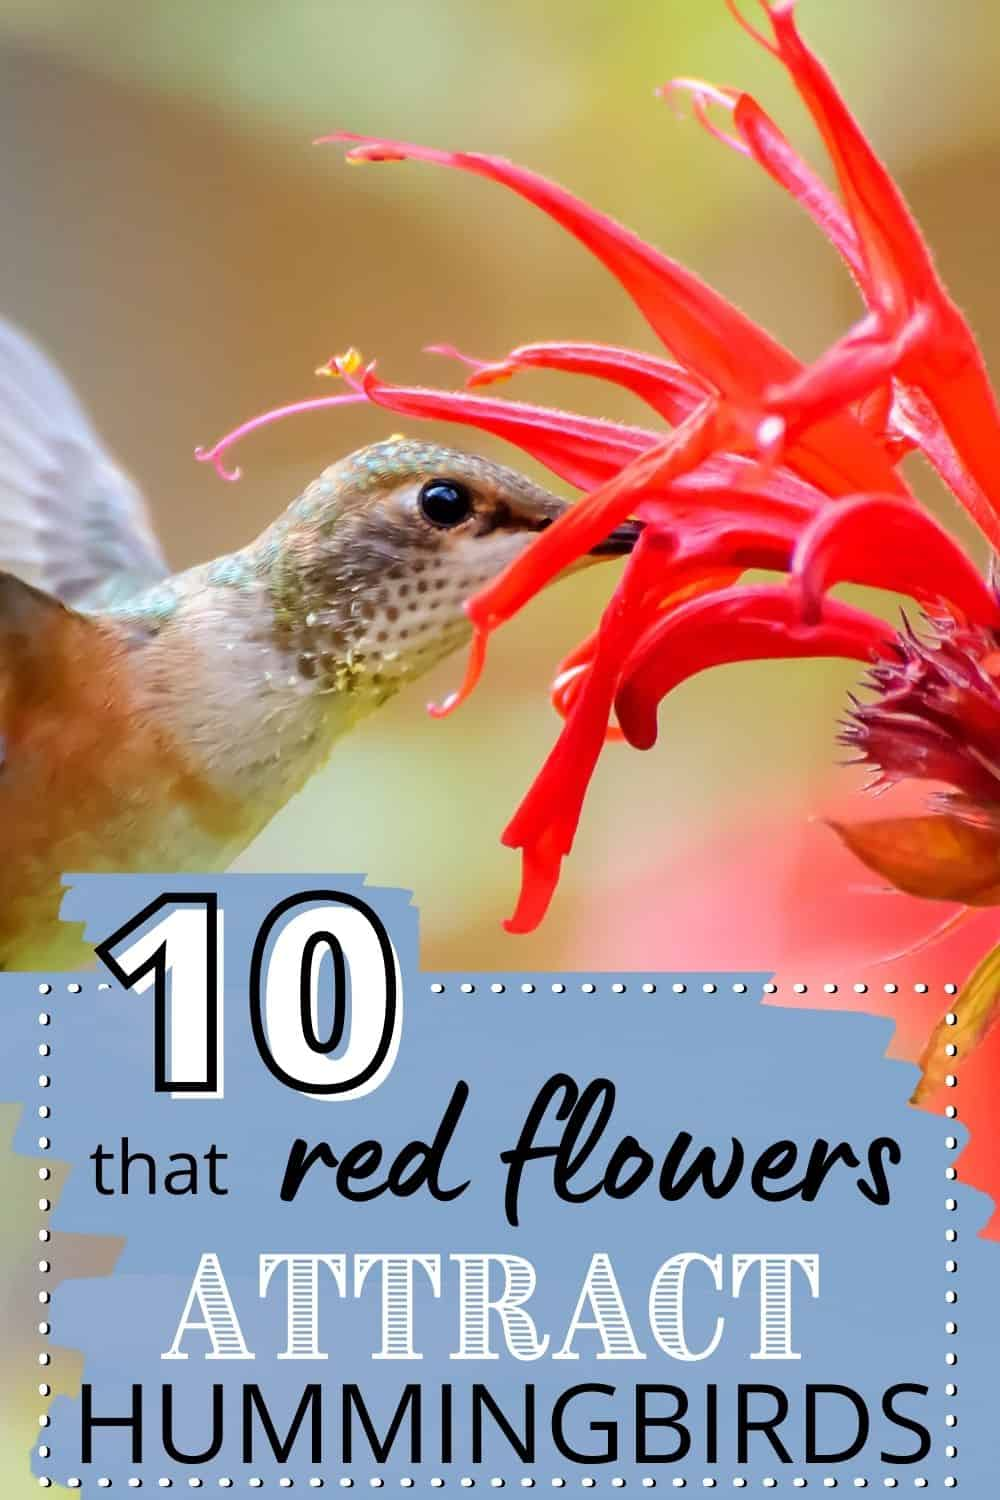 10 red flowers that attract hummingbirds to your garden